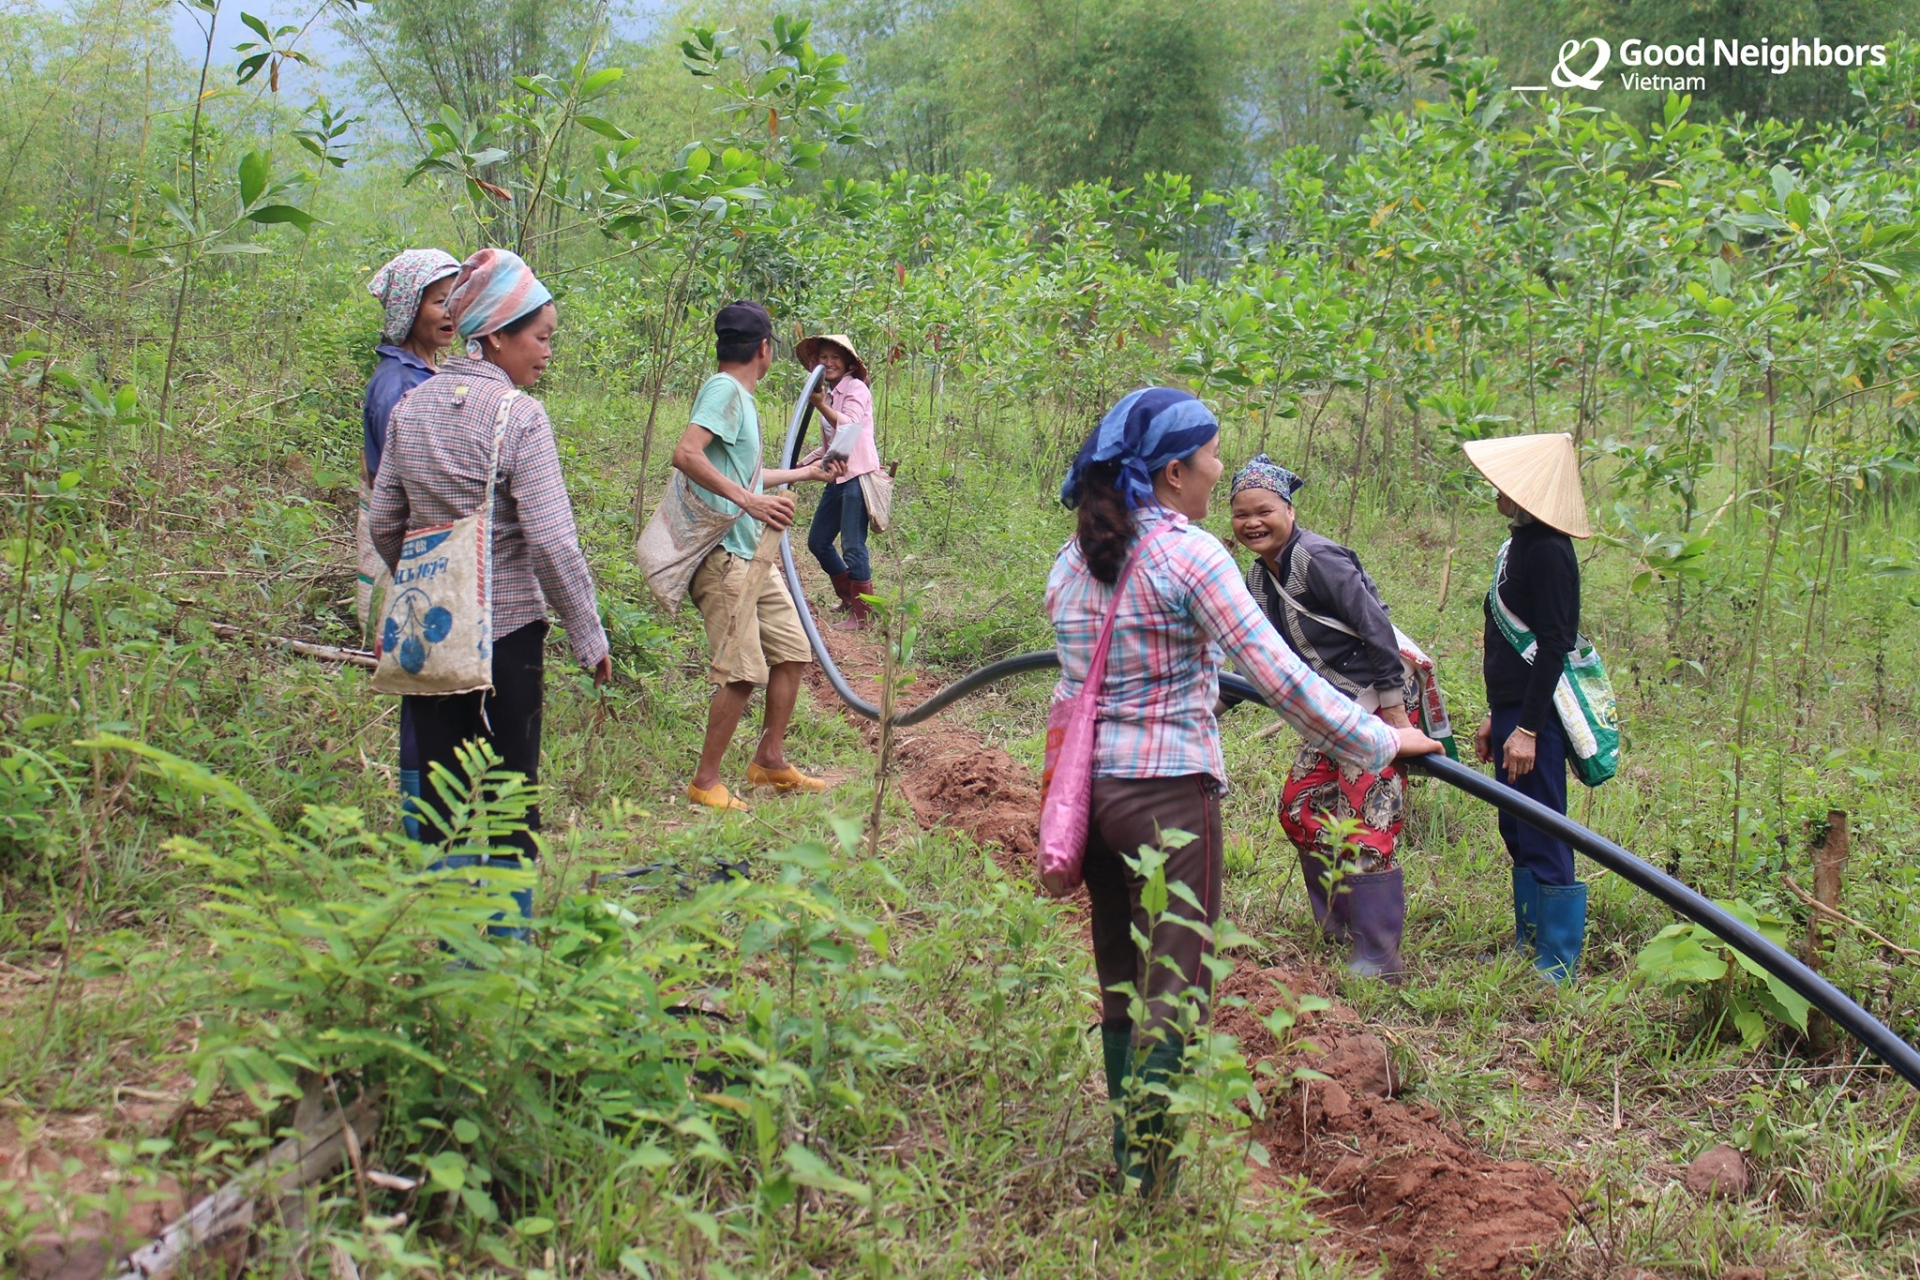 GNI improves water condition for 176 households in rural commune